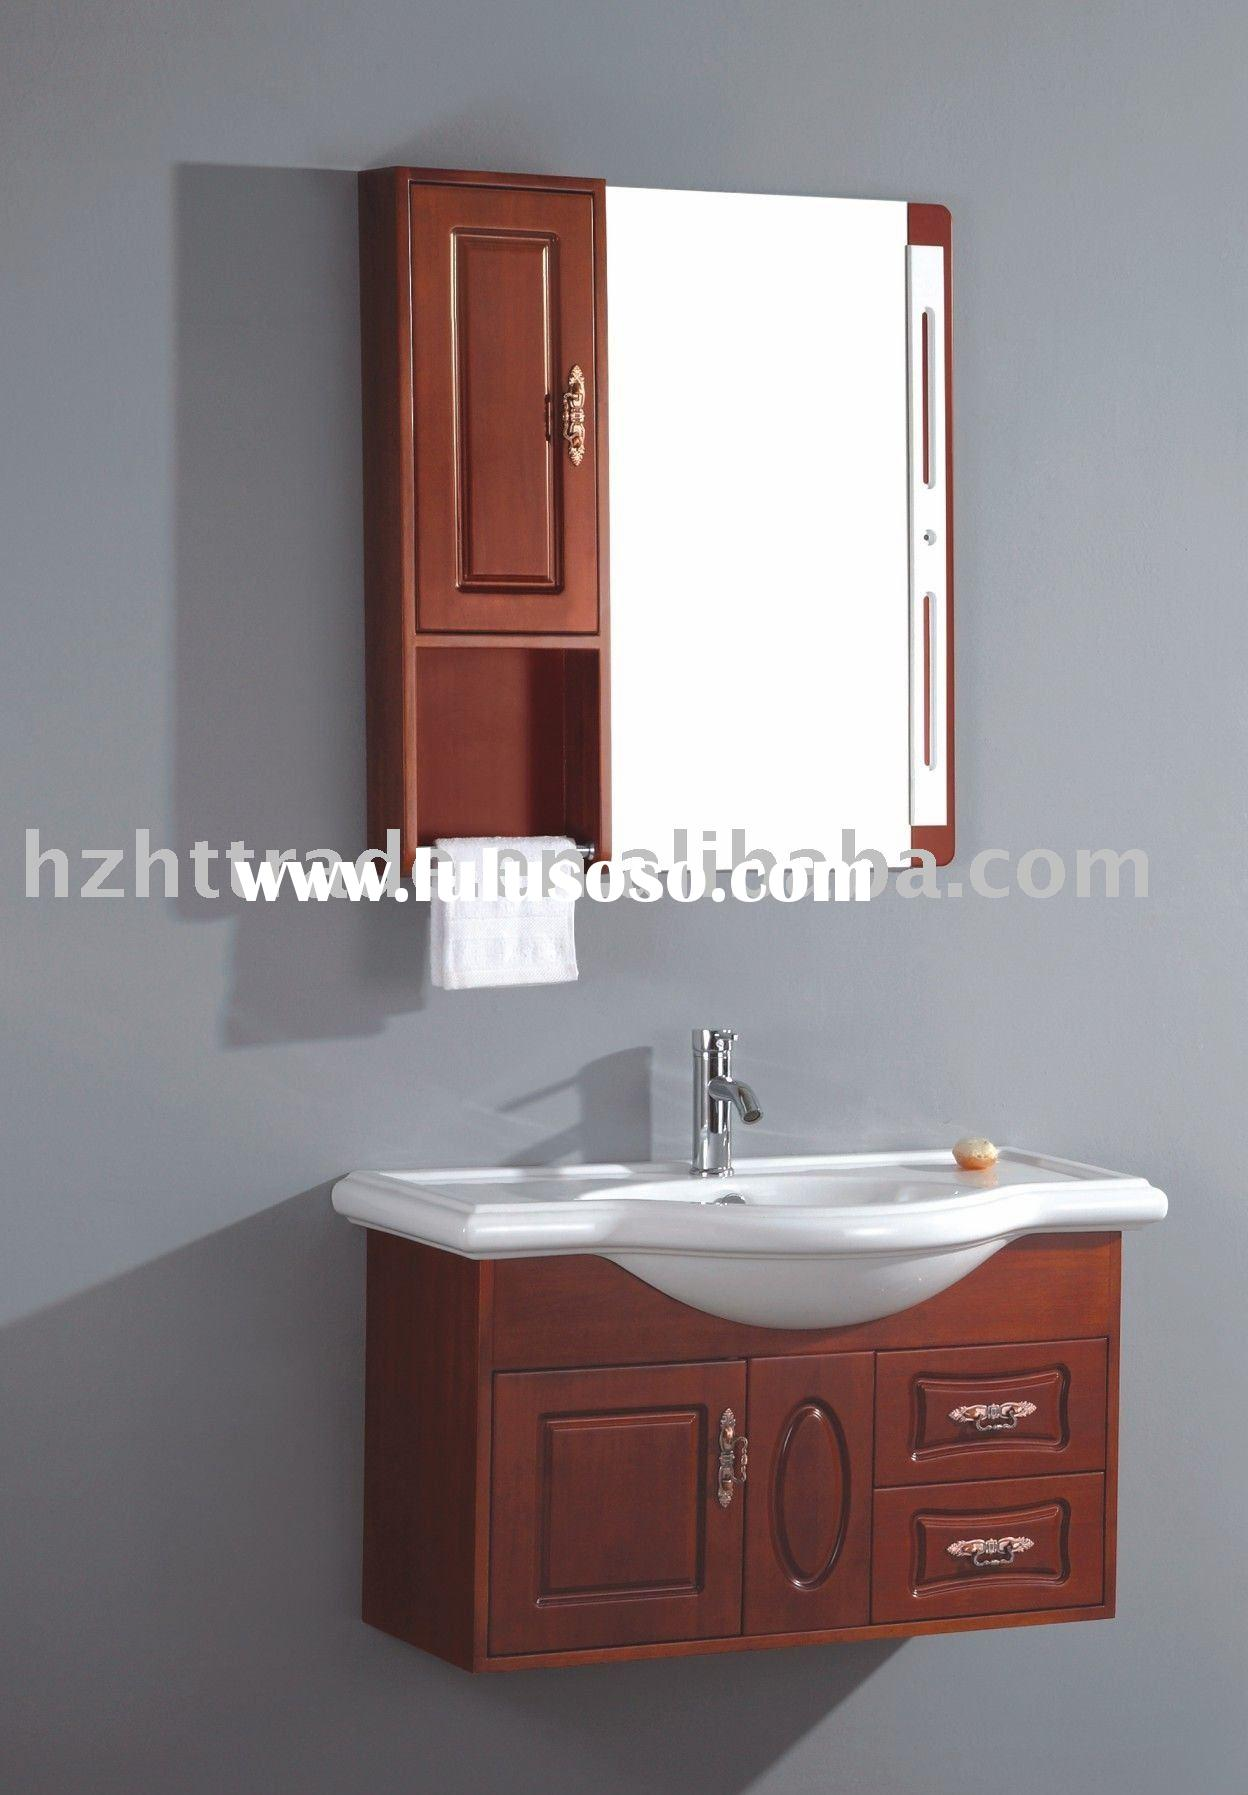 Makeup Vanity Table For Sale Price China Manufacturer